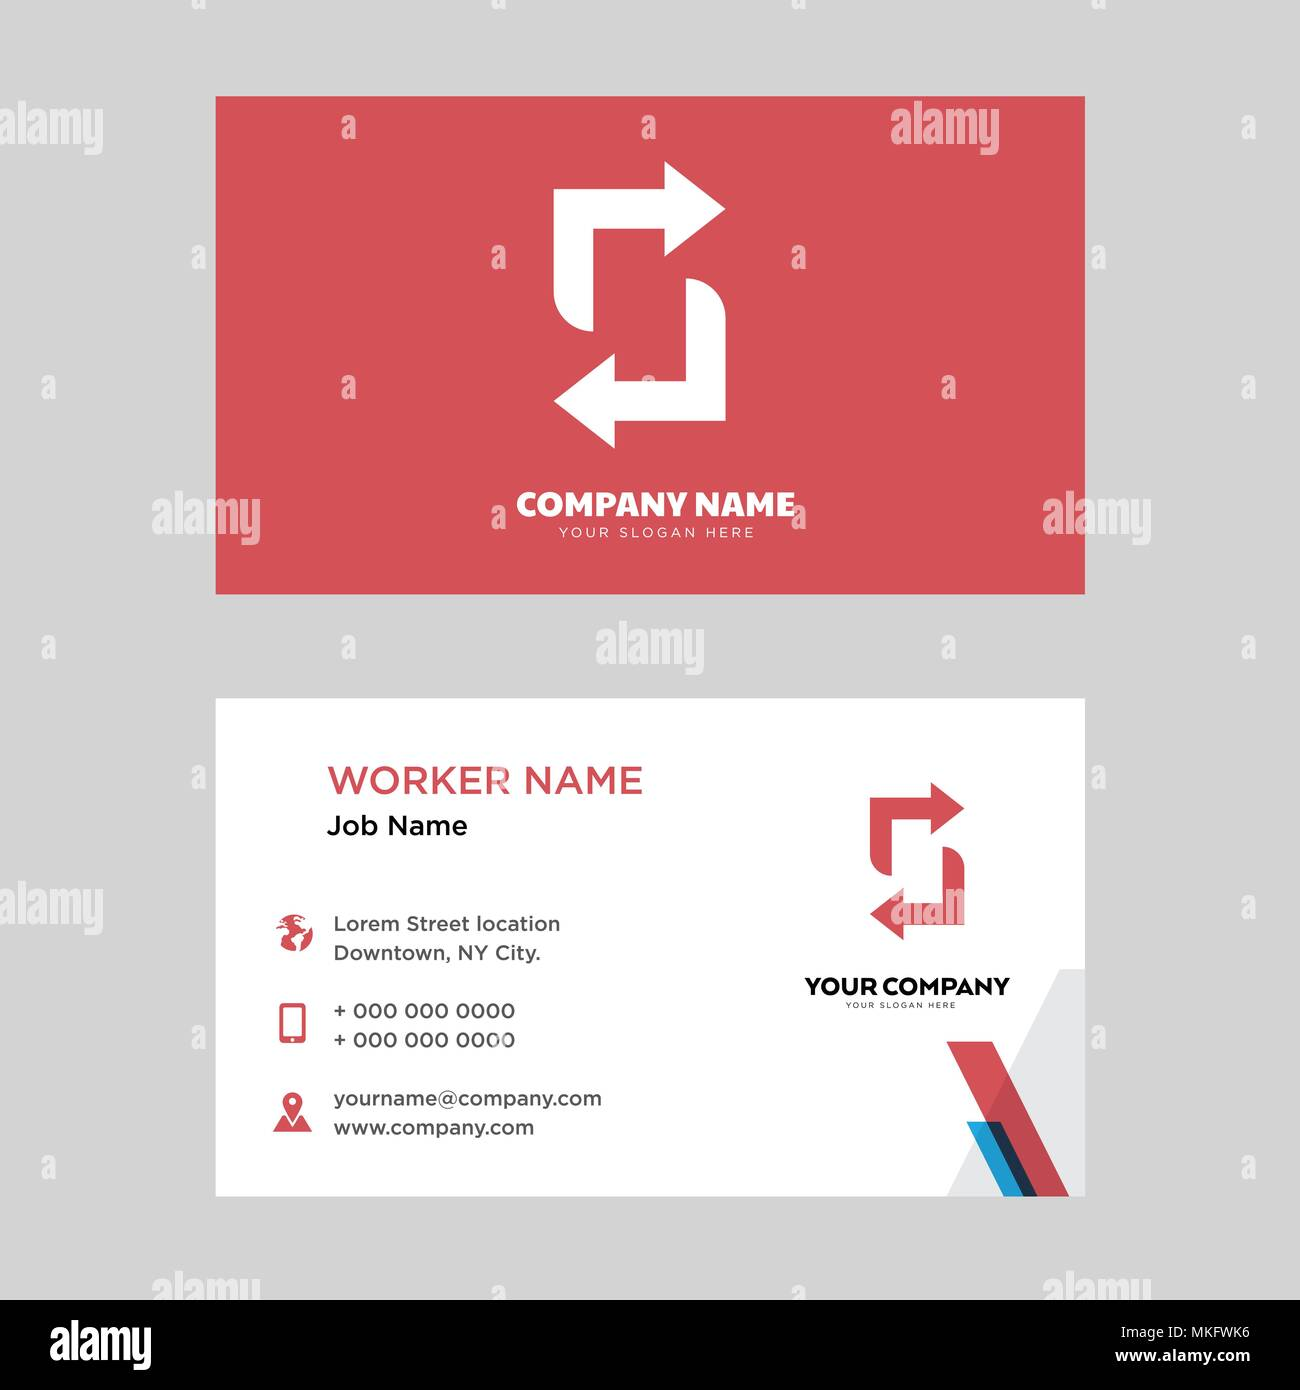 Recycle business card design template, Visiting for your company, Modern horizontal identity Card Vector Stock Vector